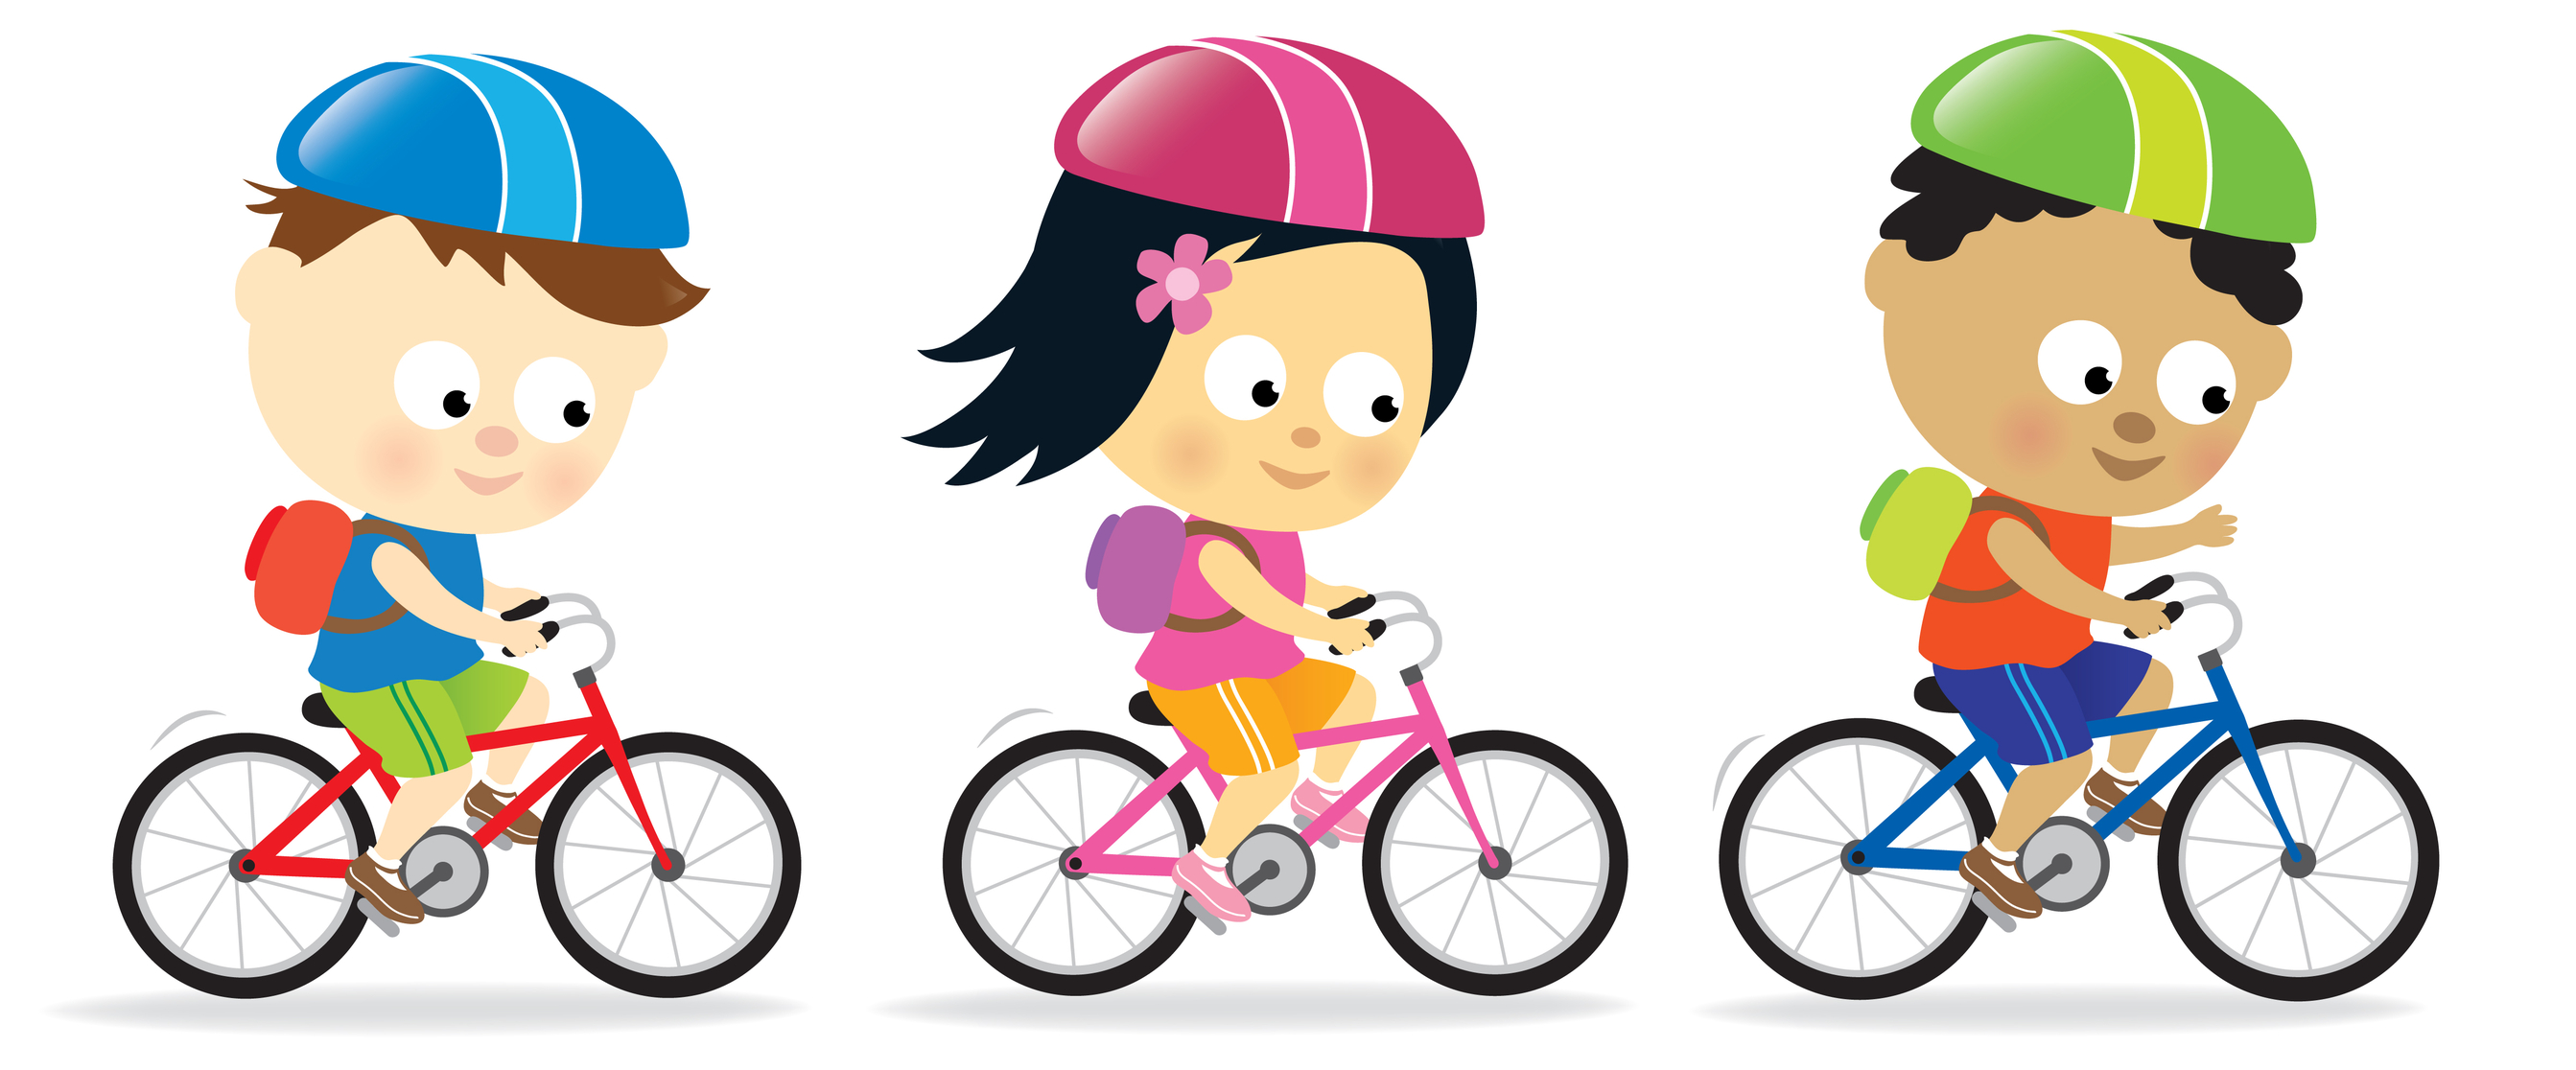 2686x1116 Bicycle Clipart Bike Safety